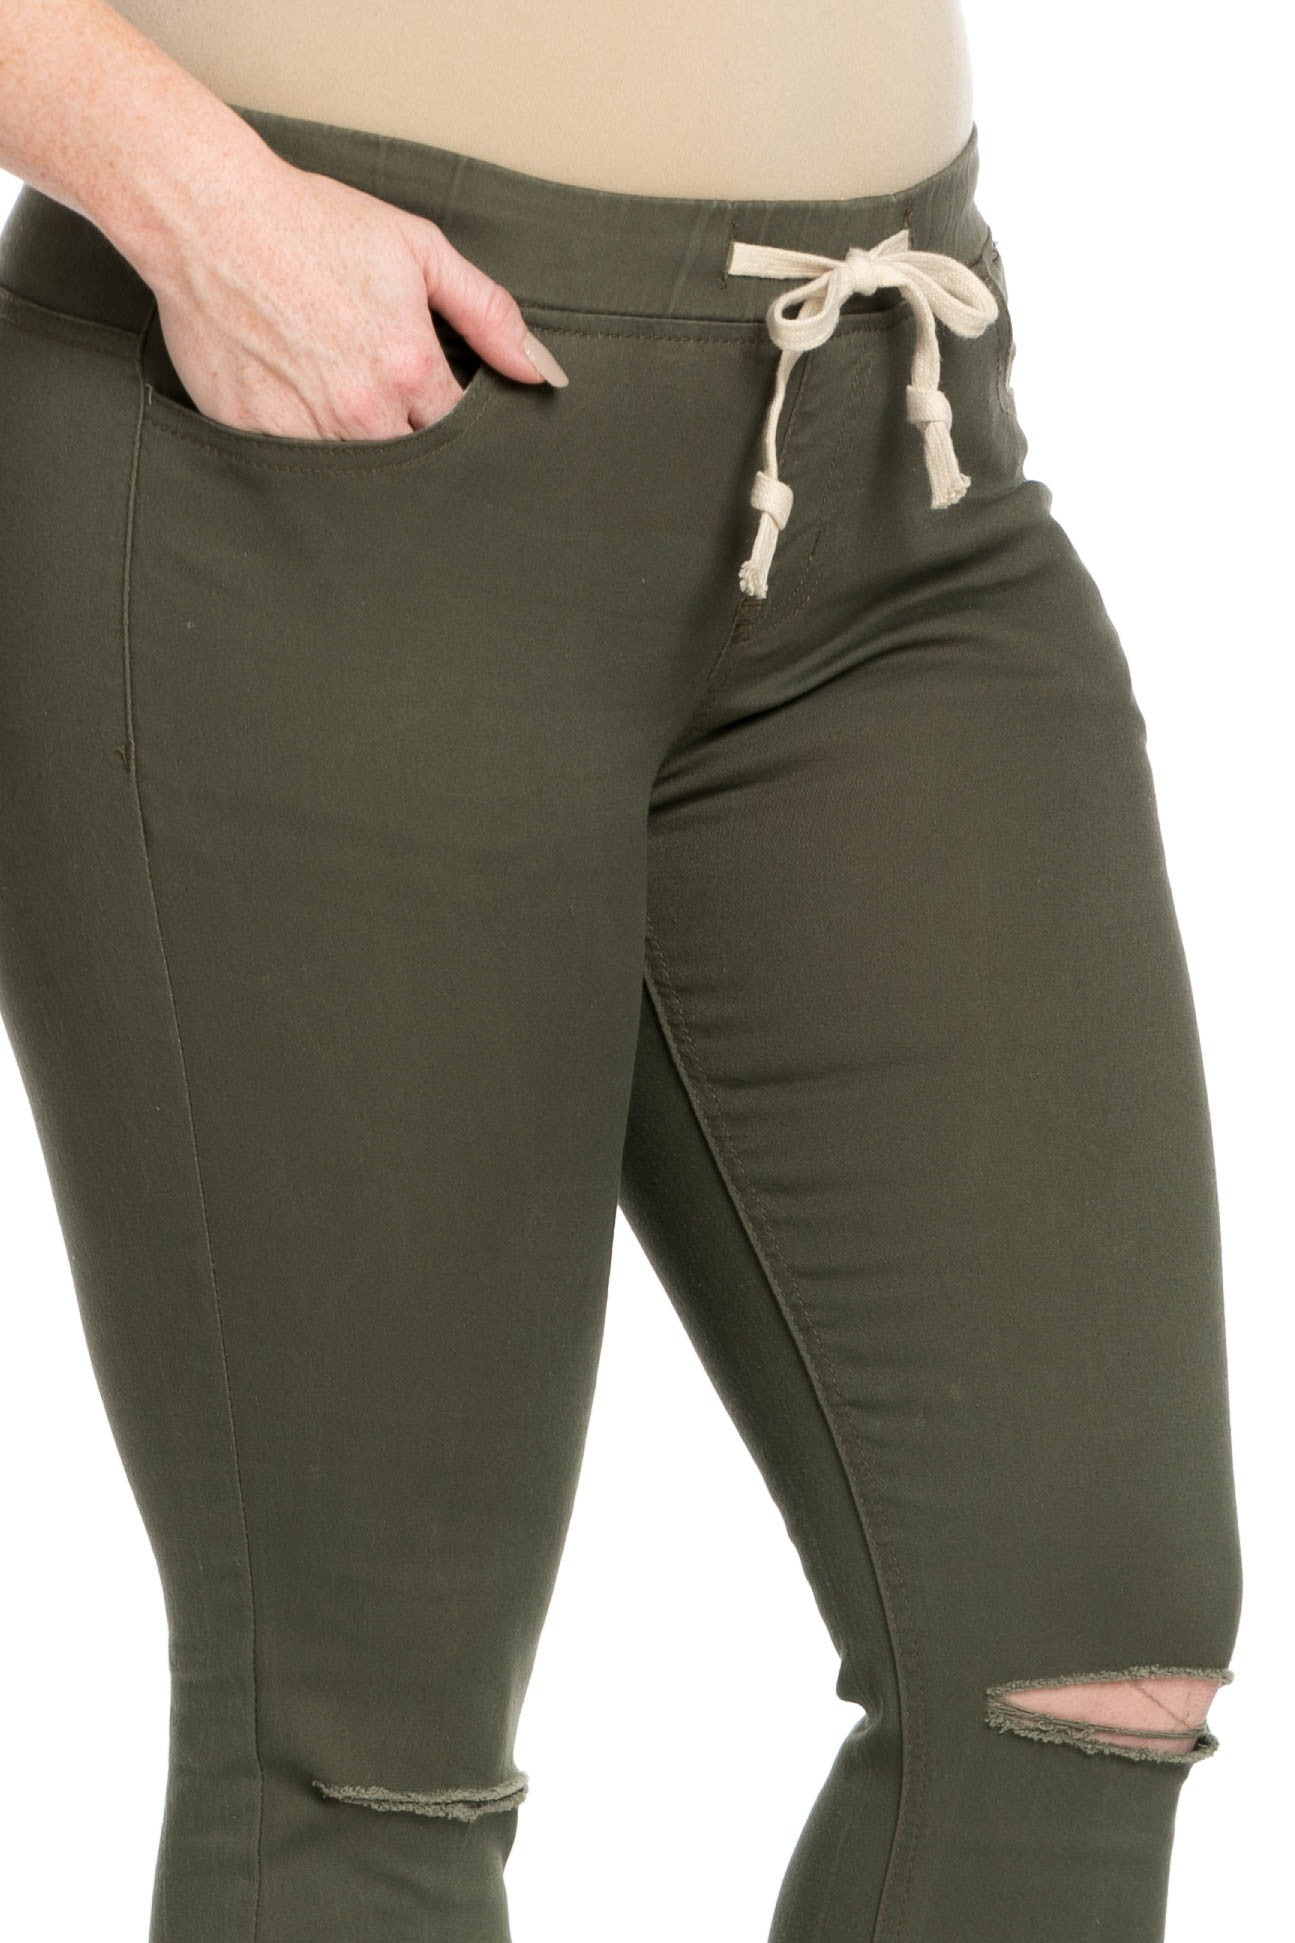 Destroyed Olive Skinny Jogger Jeans - Pants - My Yuccie - 17